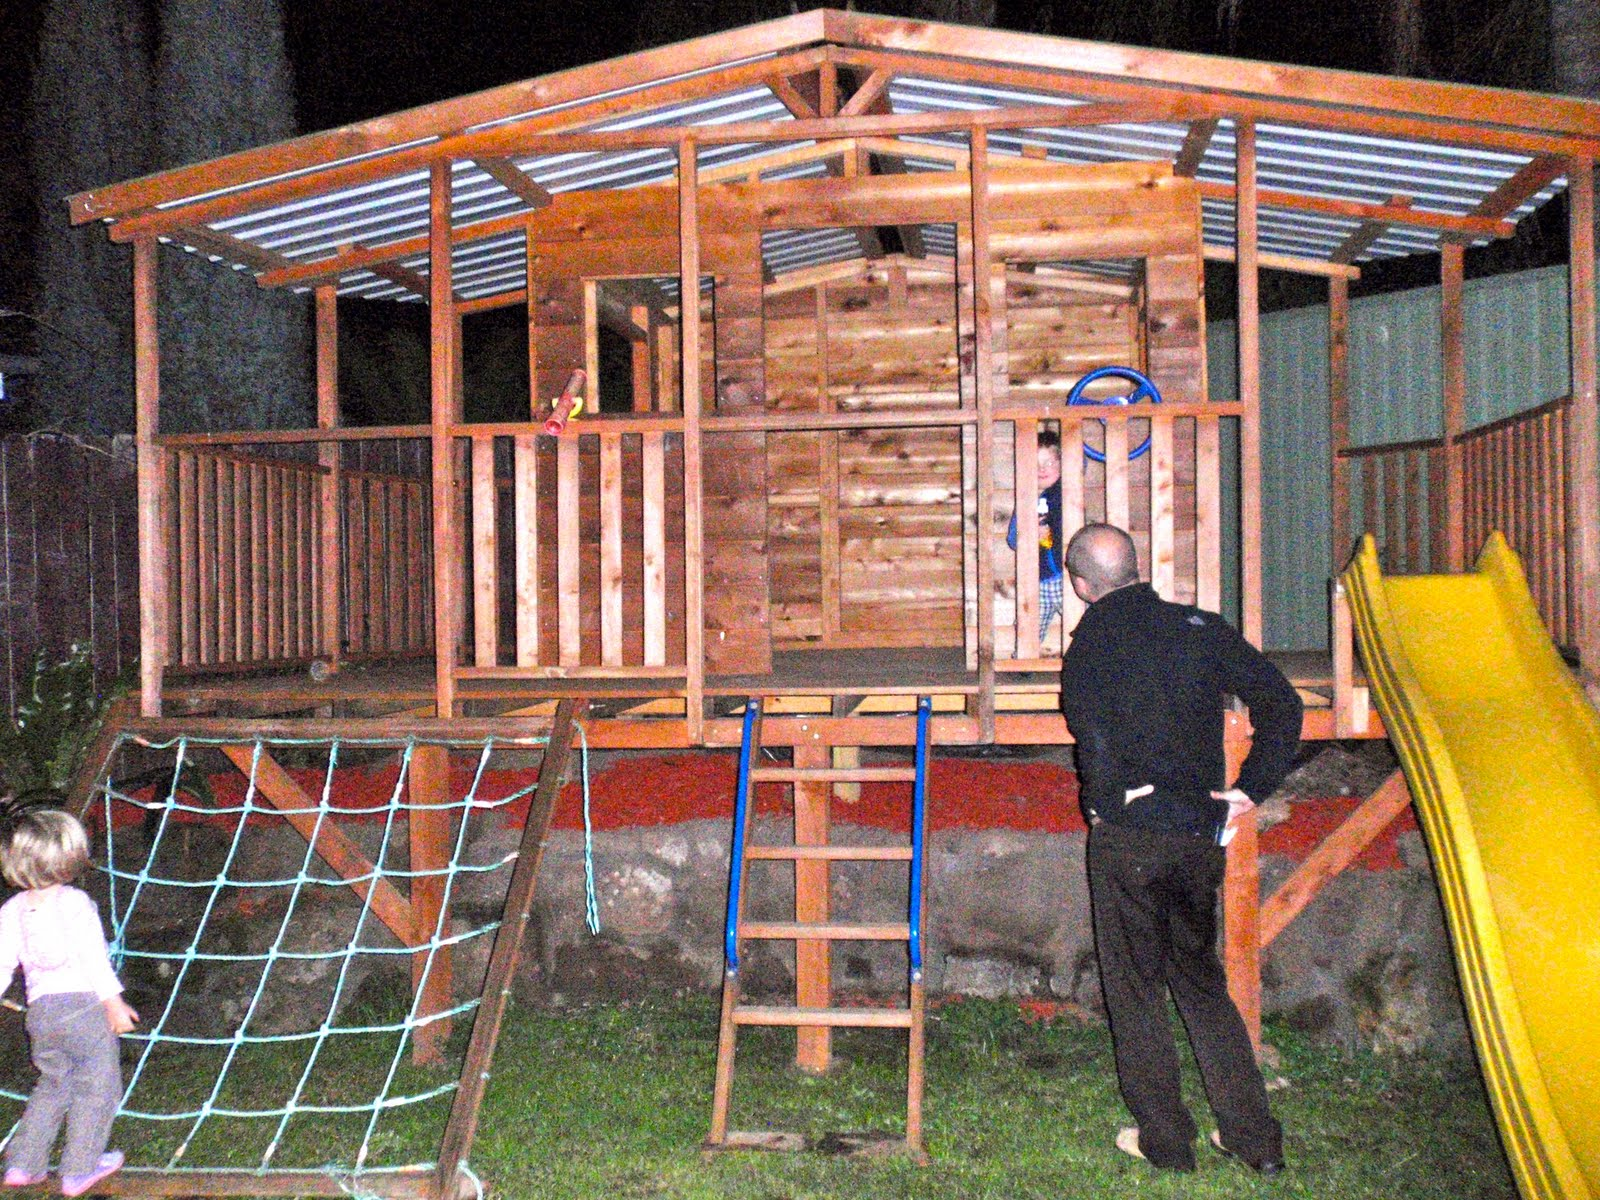 DIY cubby house plans | Improve My Home - Home Improvement, Garden